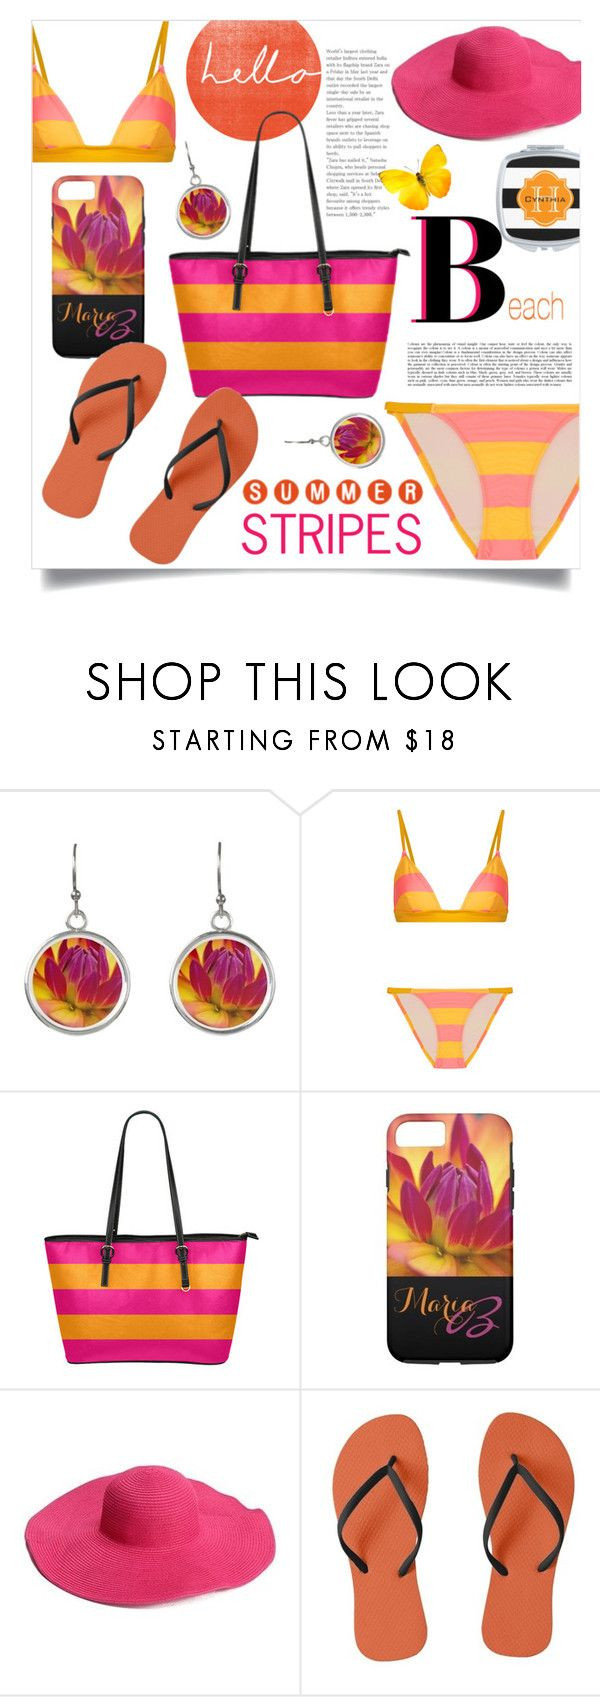 """Pink & Orange Beachwear"" by colormegirly ❤ liked on Polyvore featuring Paul Frank, Solid & Striped, beachday, beach, handbags and polyvoreset"